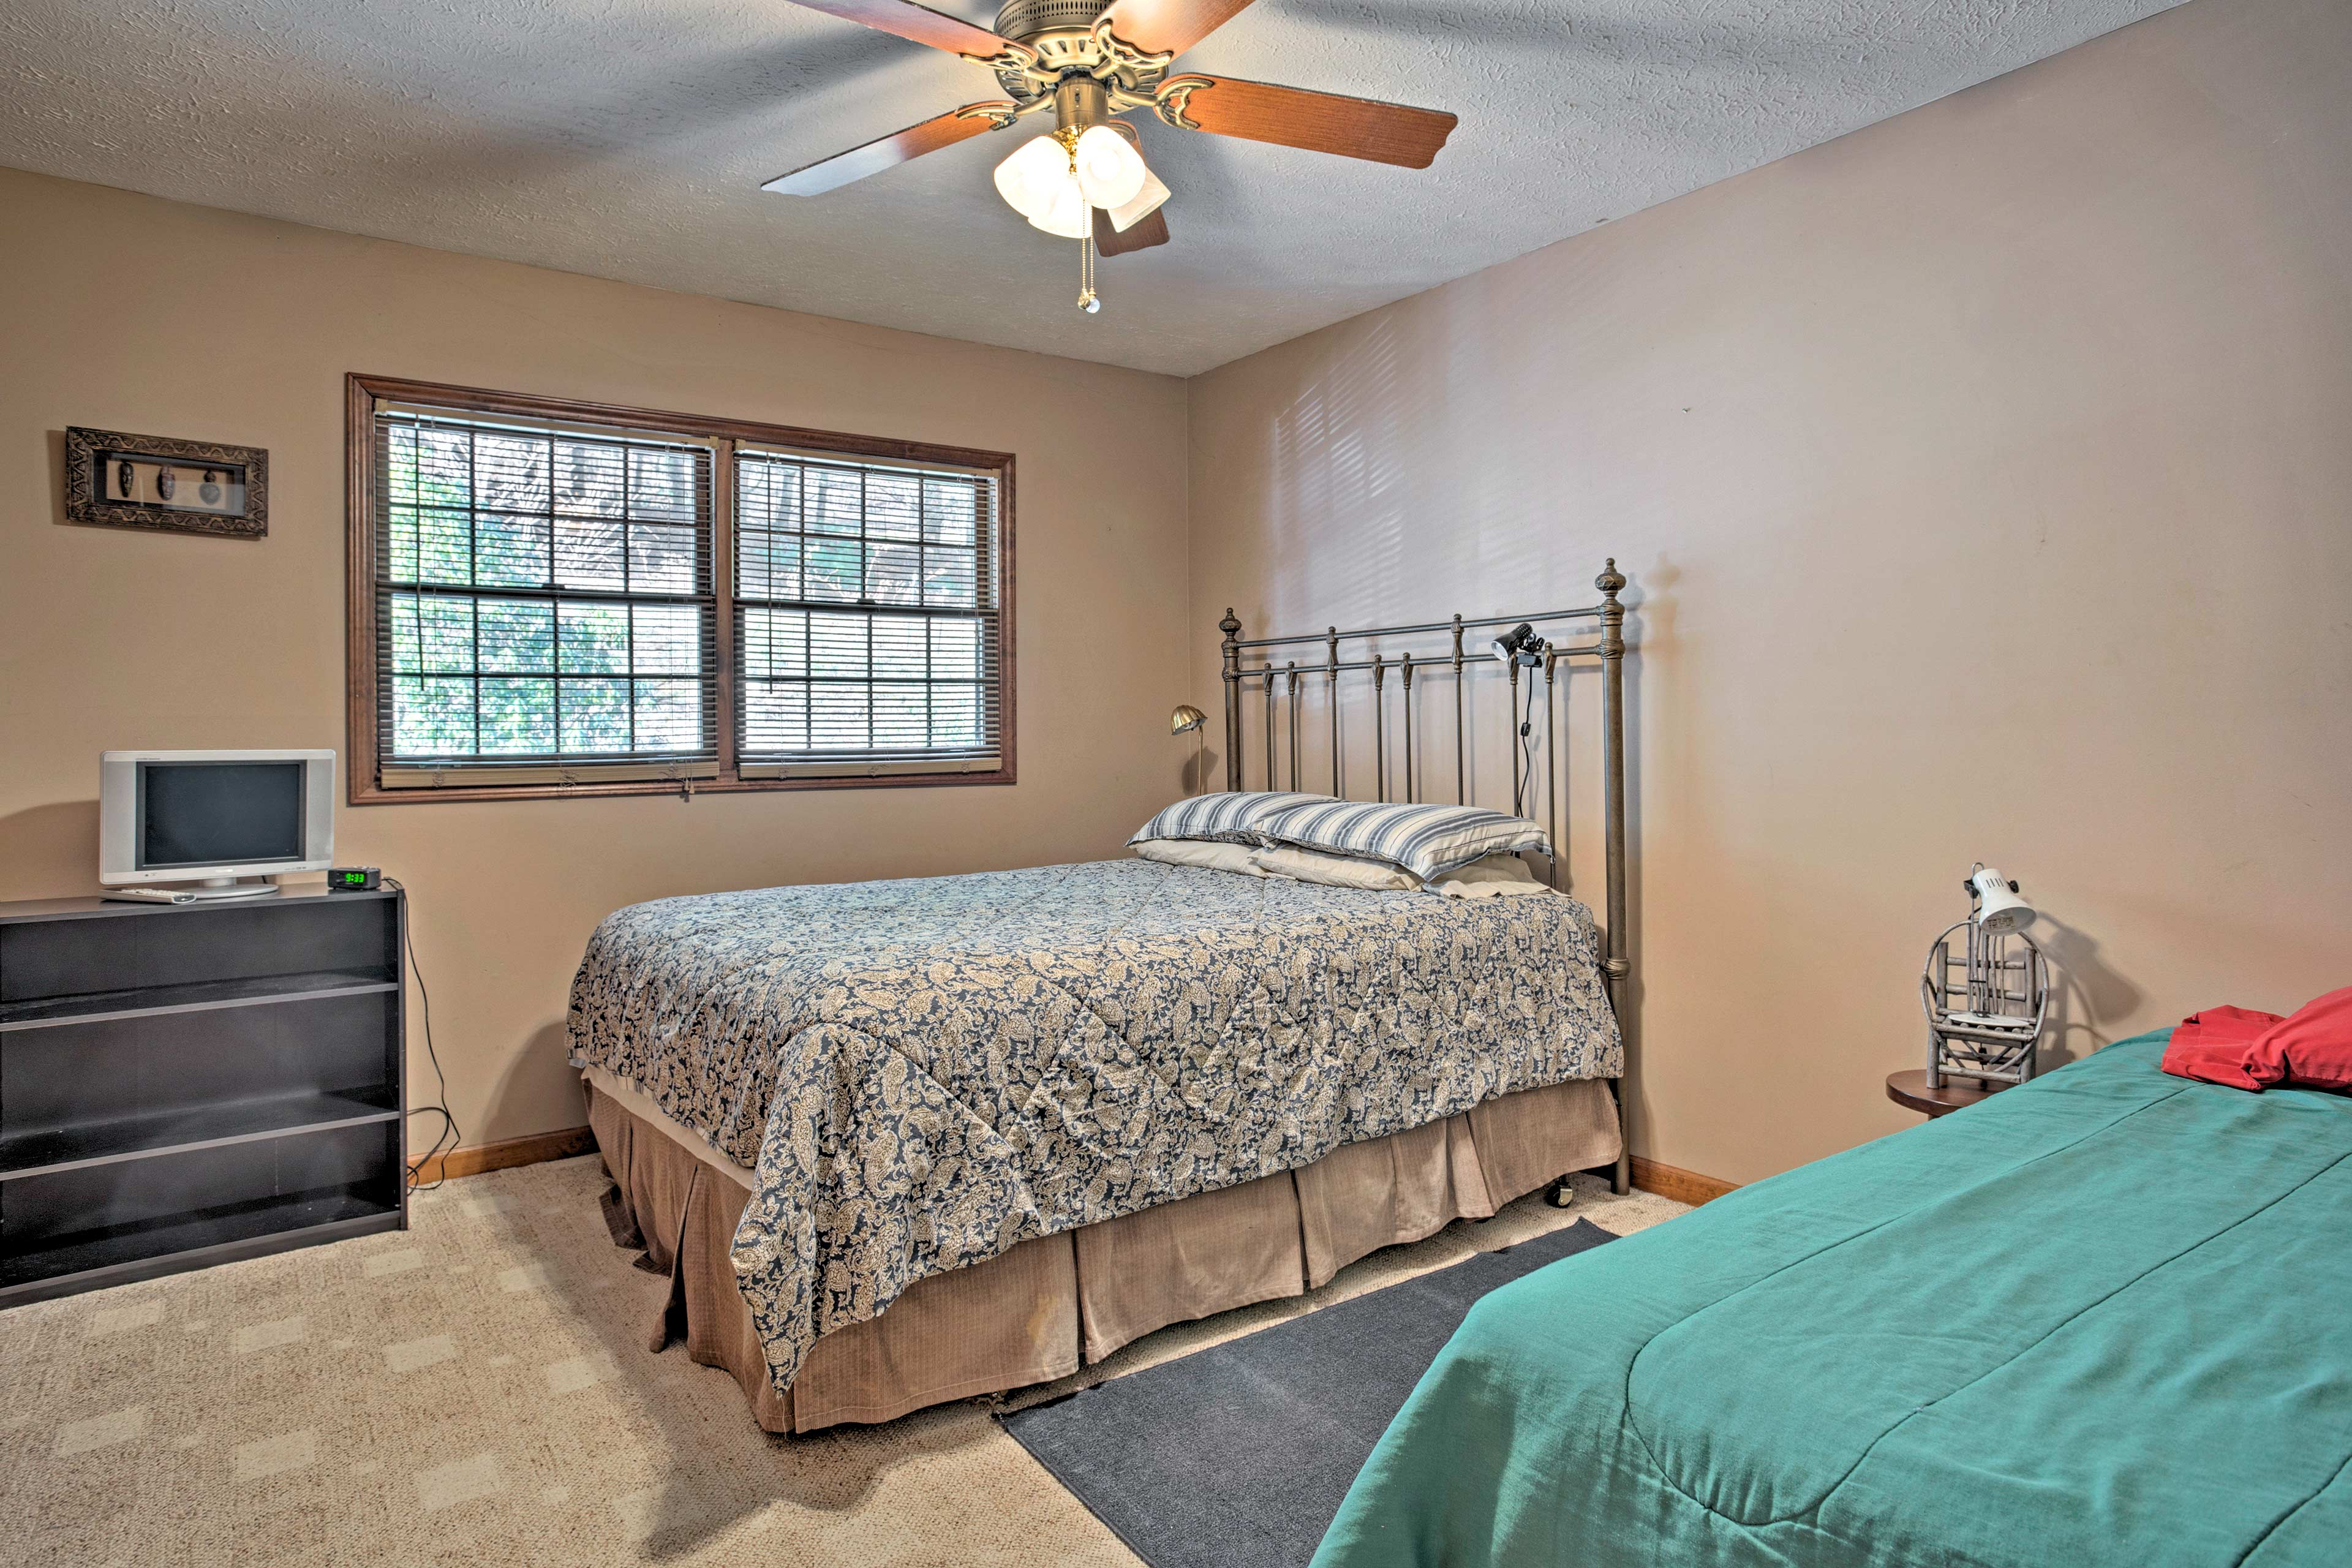 Choose from one of the 3 bedrooms of the main living area.